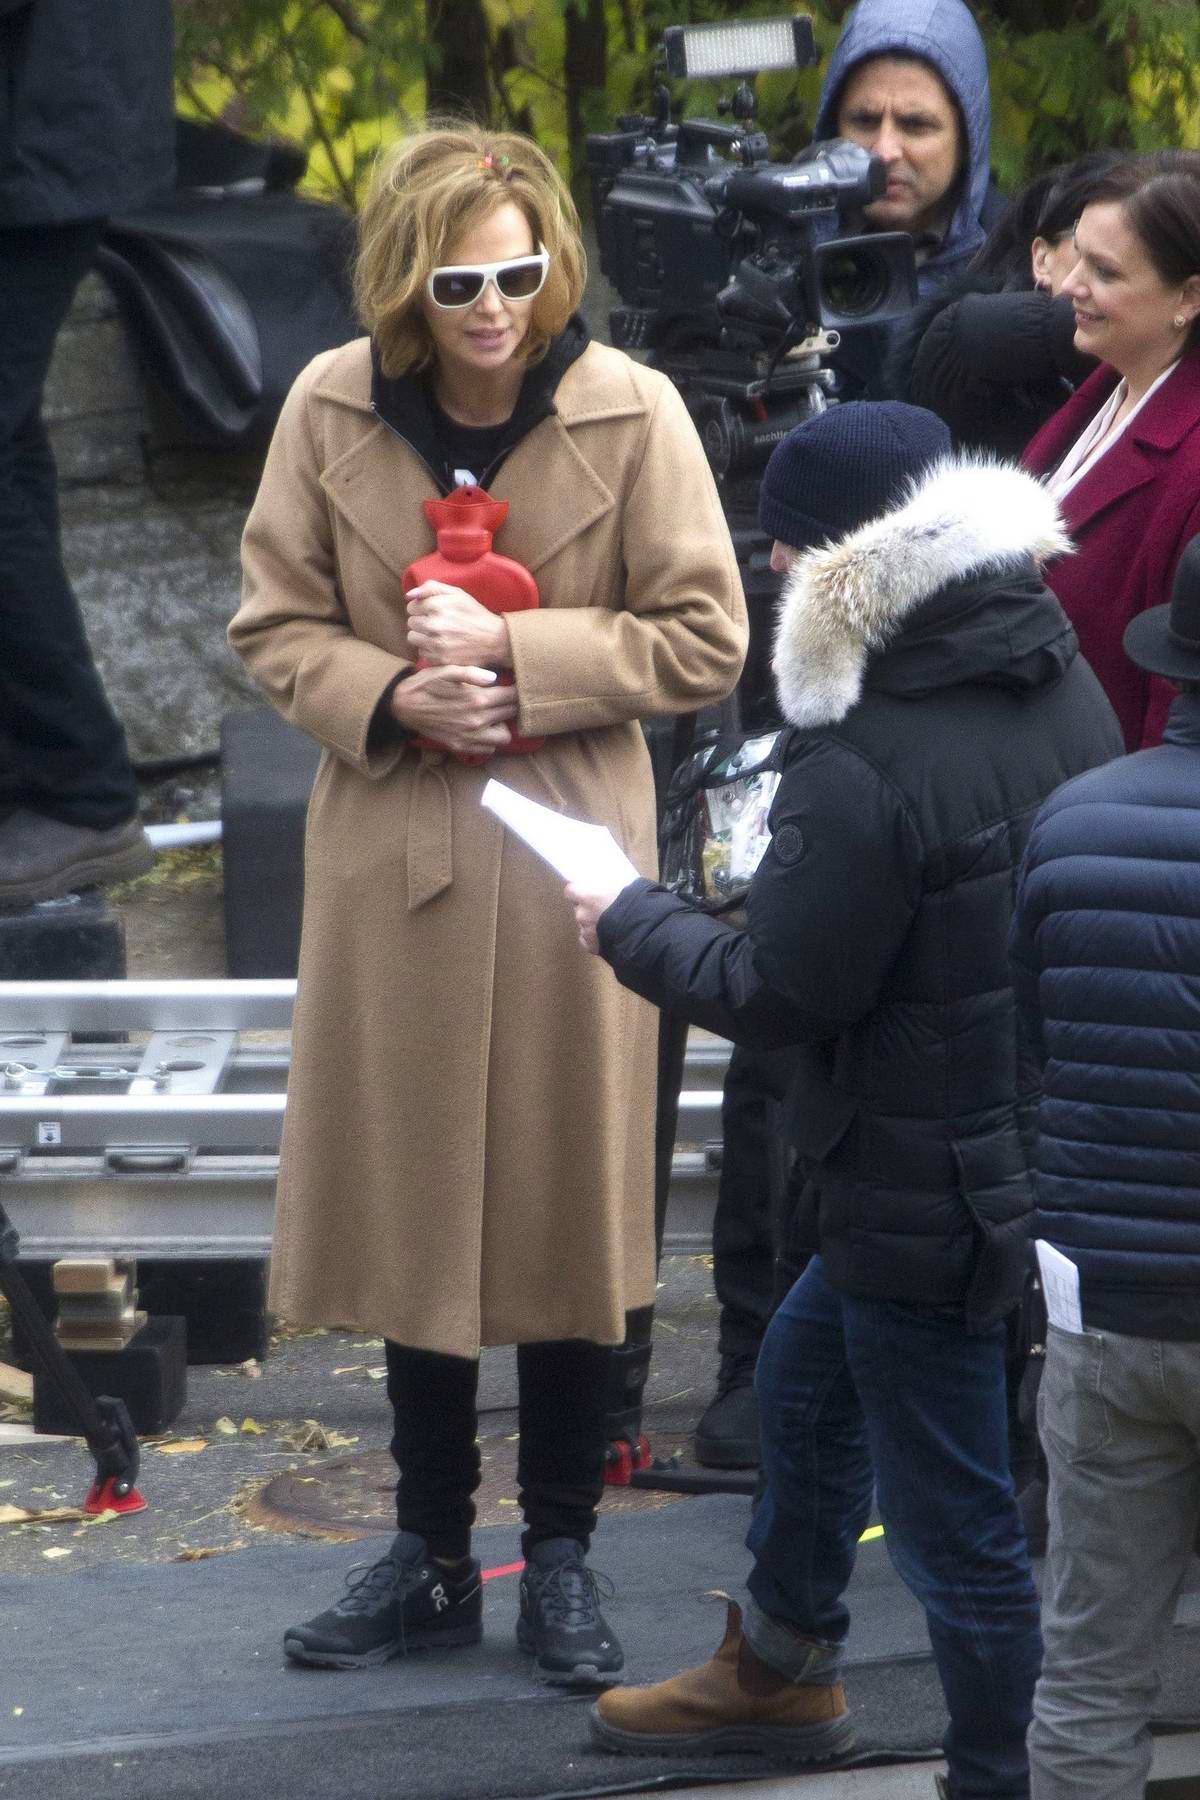 Charlize Theron spotted while filming scenes for her upcoming movie 'Flarsky' in Montreal, Canada